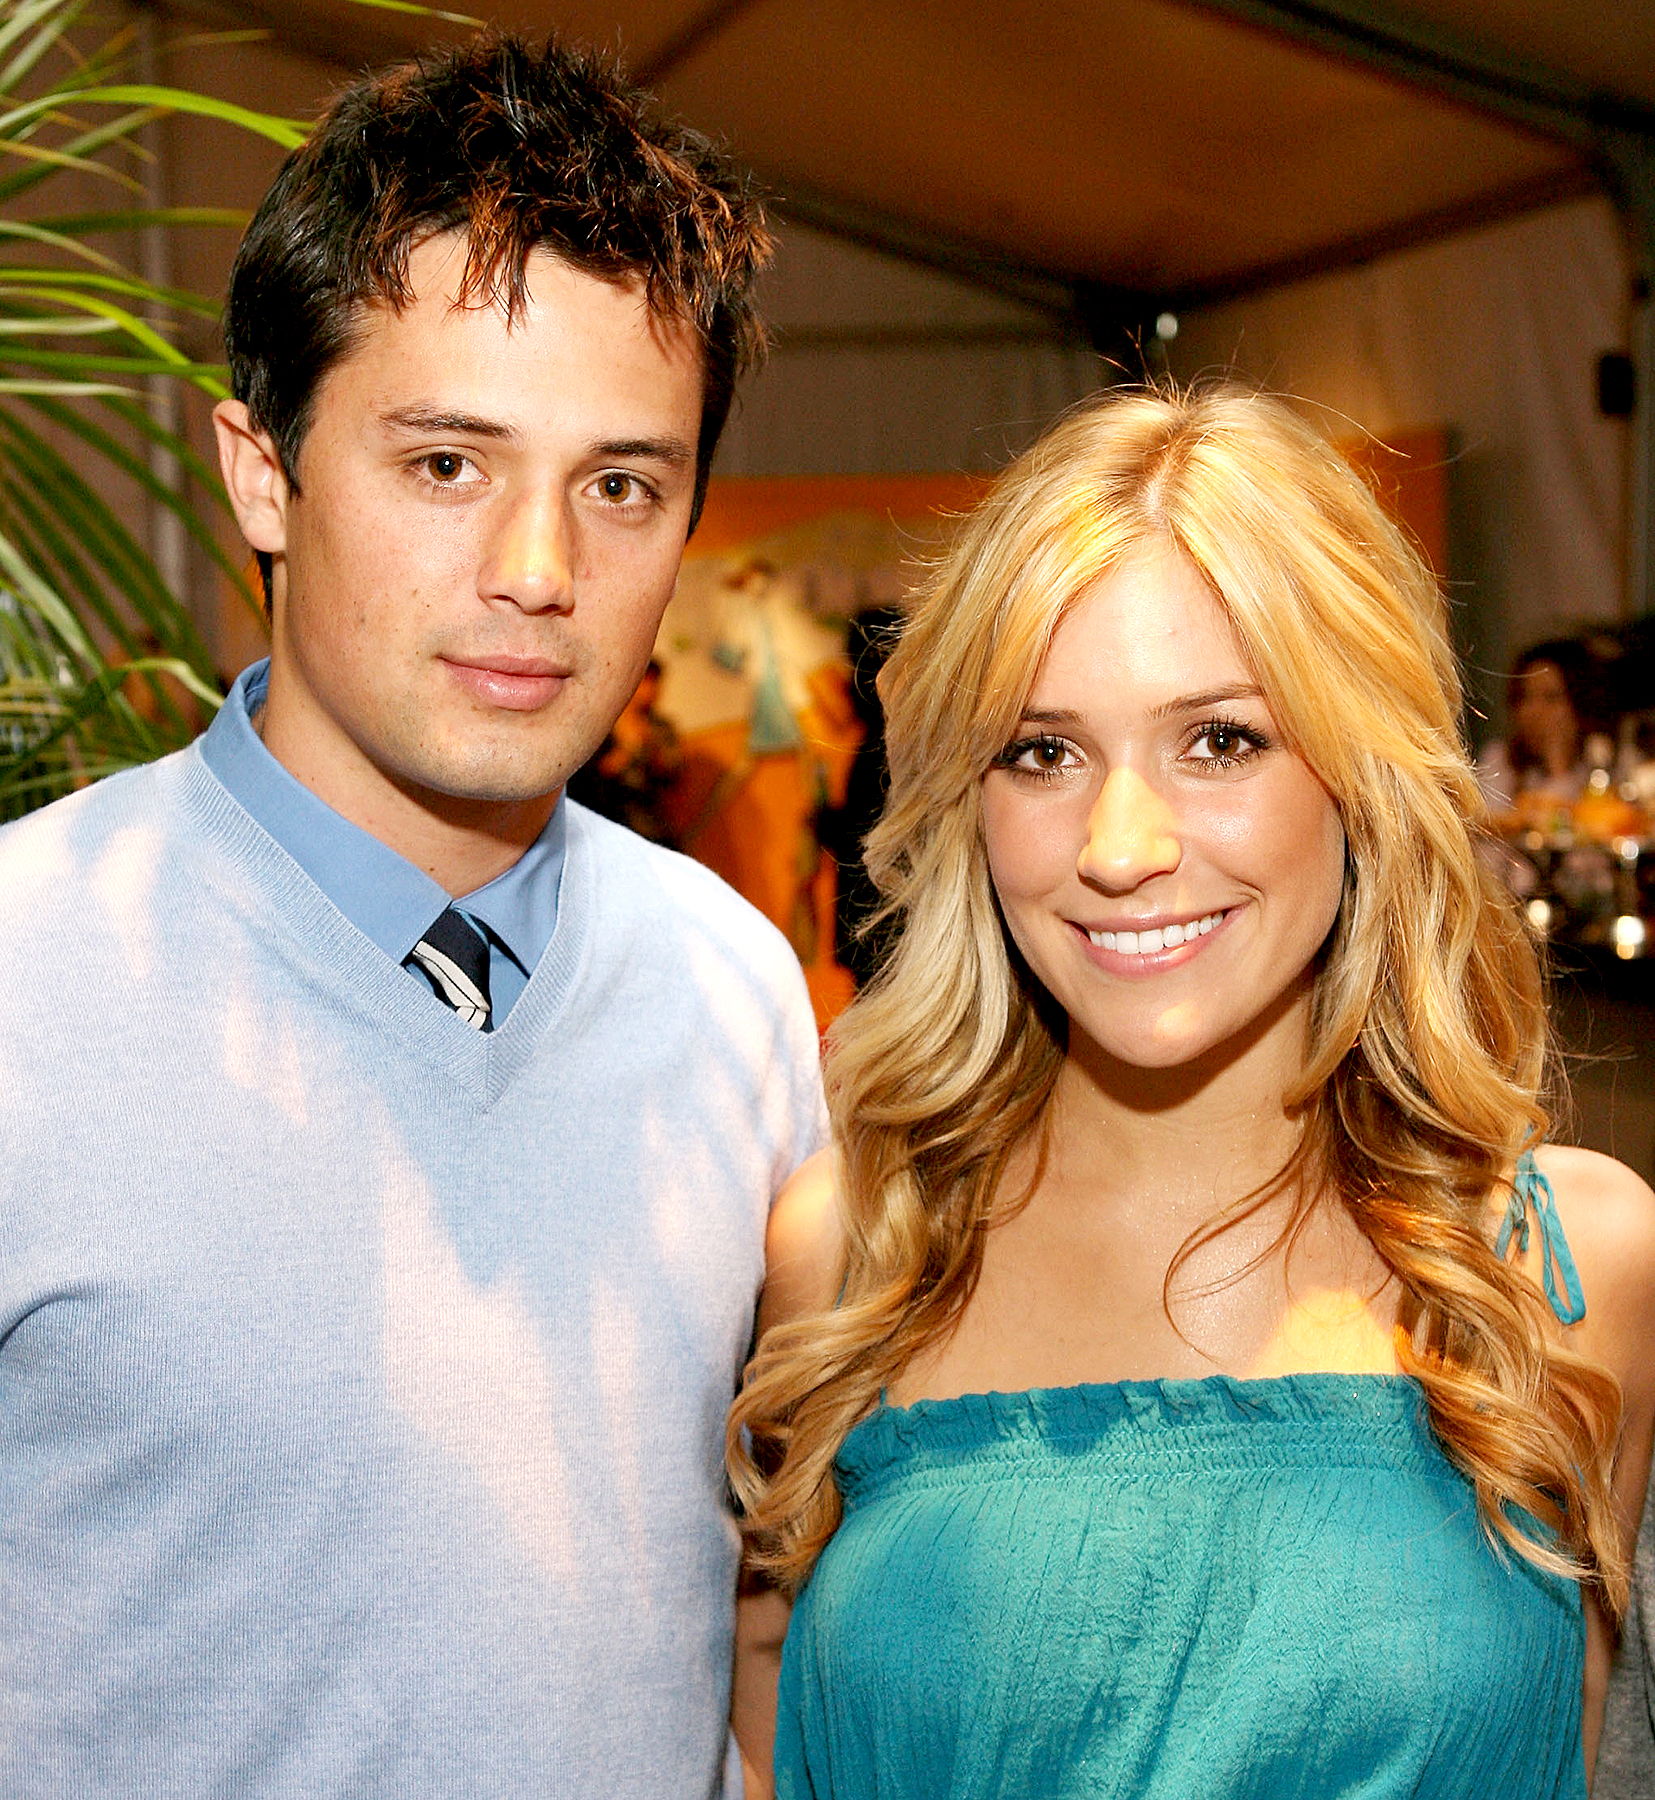 Stephen-Colletti-Kristin-Cavallari - Stephen Colletti and Kristin Cavallari attend Mercedes-Benz Fashion Week held at Smashbox Studios on March 11, 2008 in Culver City, California.